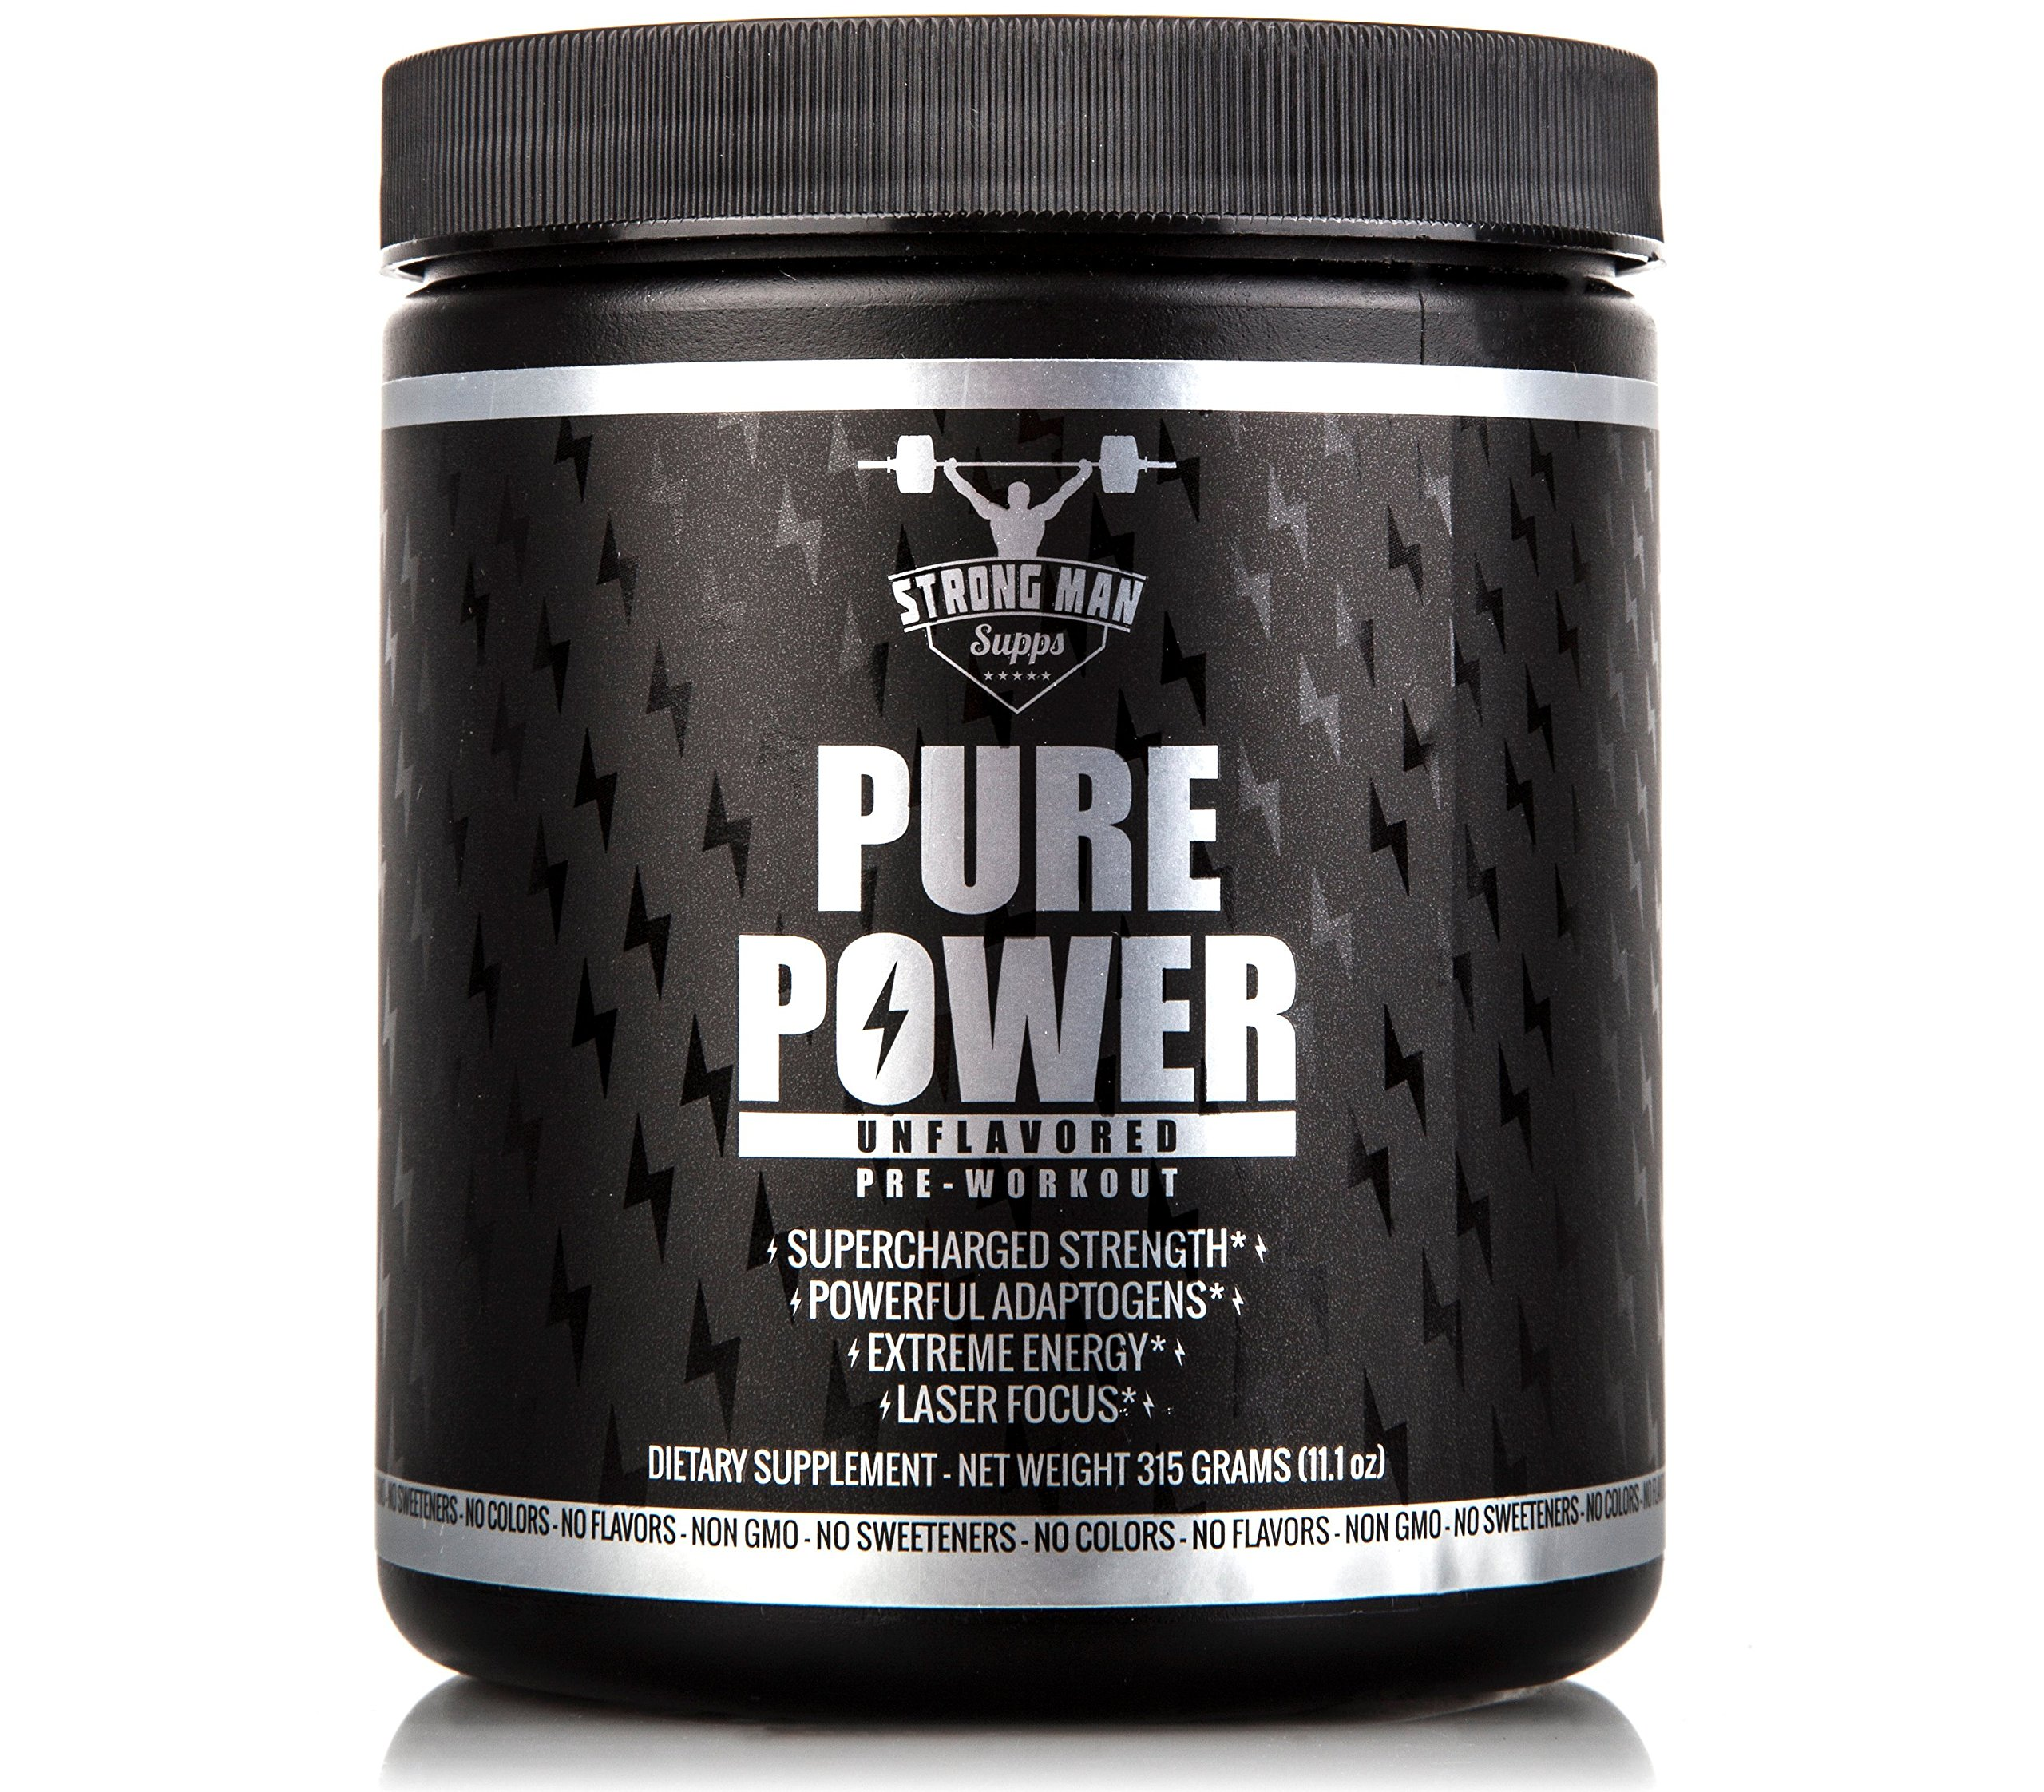 Pure Power PRE Workout, TOP All Natural PREWORKOUT Powder Supplement, Healthy Clean Vegan Paleo Friendly Non GMO Pre-Workout, Plant Powered Energy & Pump + Video on Super Strength (Unflavored) 315g